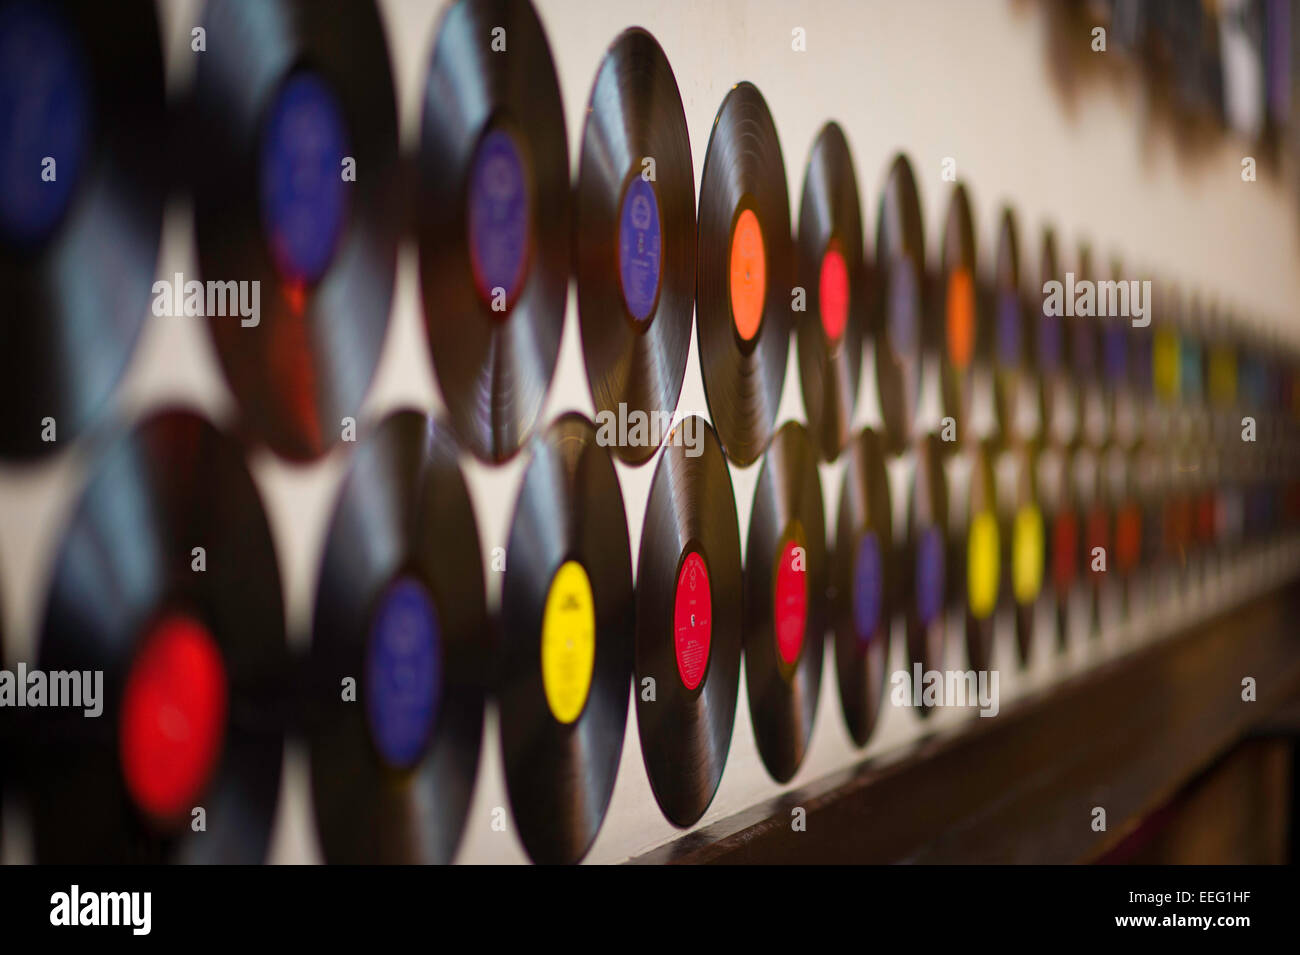 Vinyl record LP's hanging on a wall in the Brewhouse pub Cardiff - Stock Image